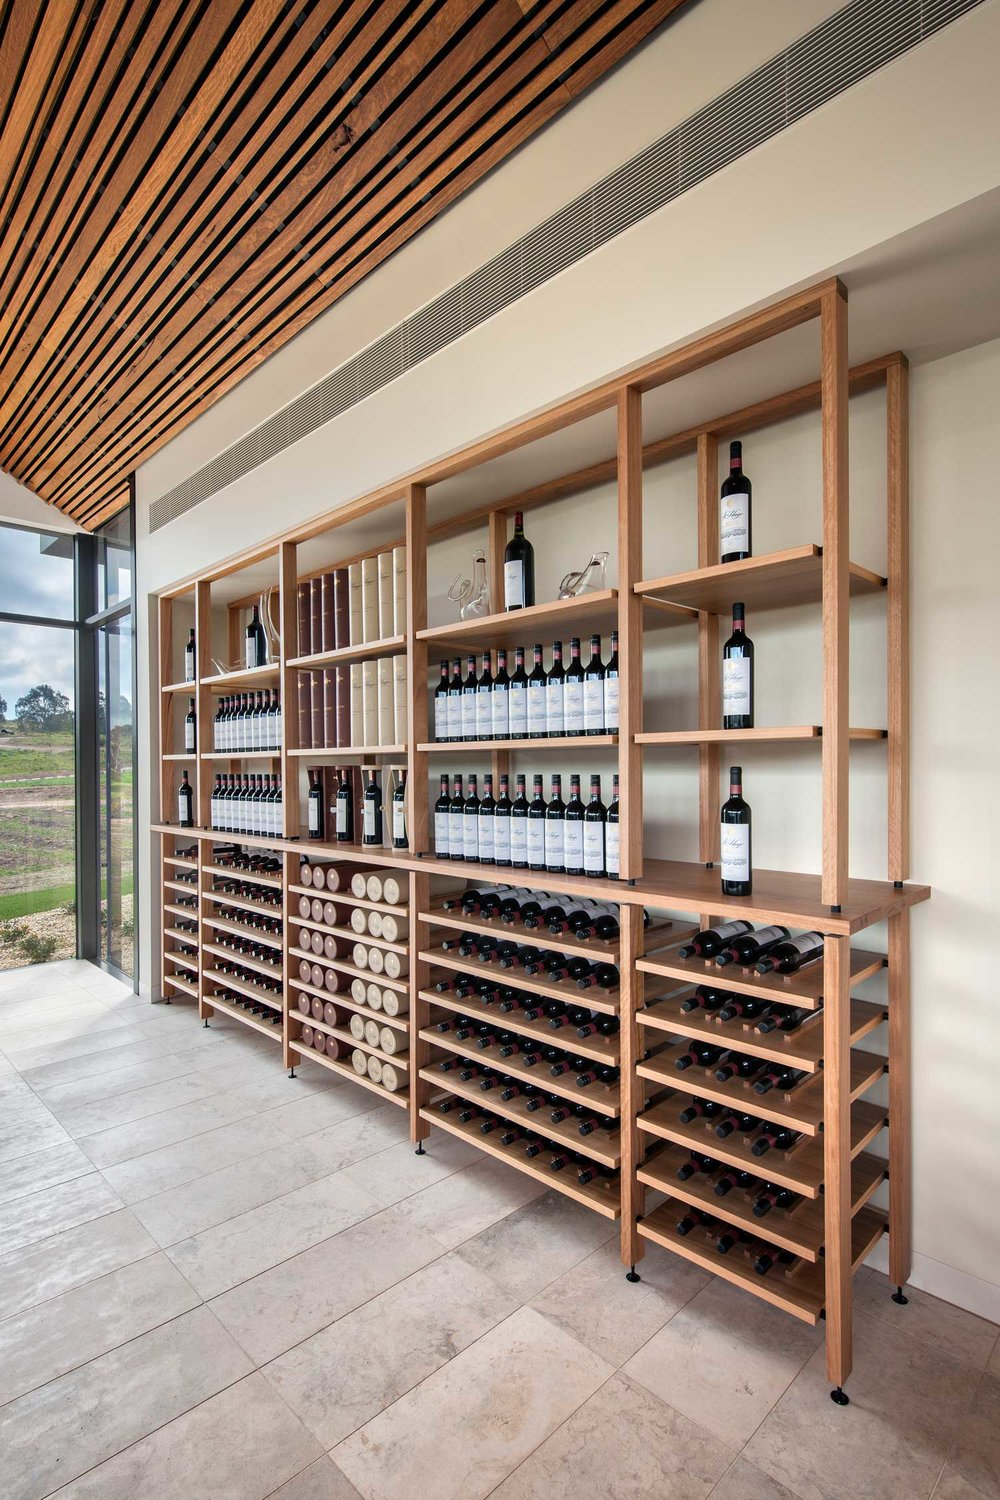 St-Hugo-Wine-Cellar-by-Studio-Gram-with-JBG-Architects-Yellowtrace-09.jpg